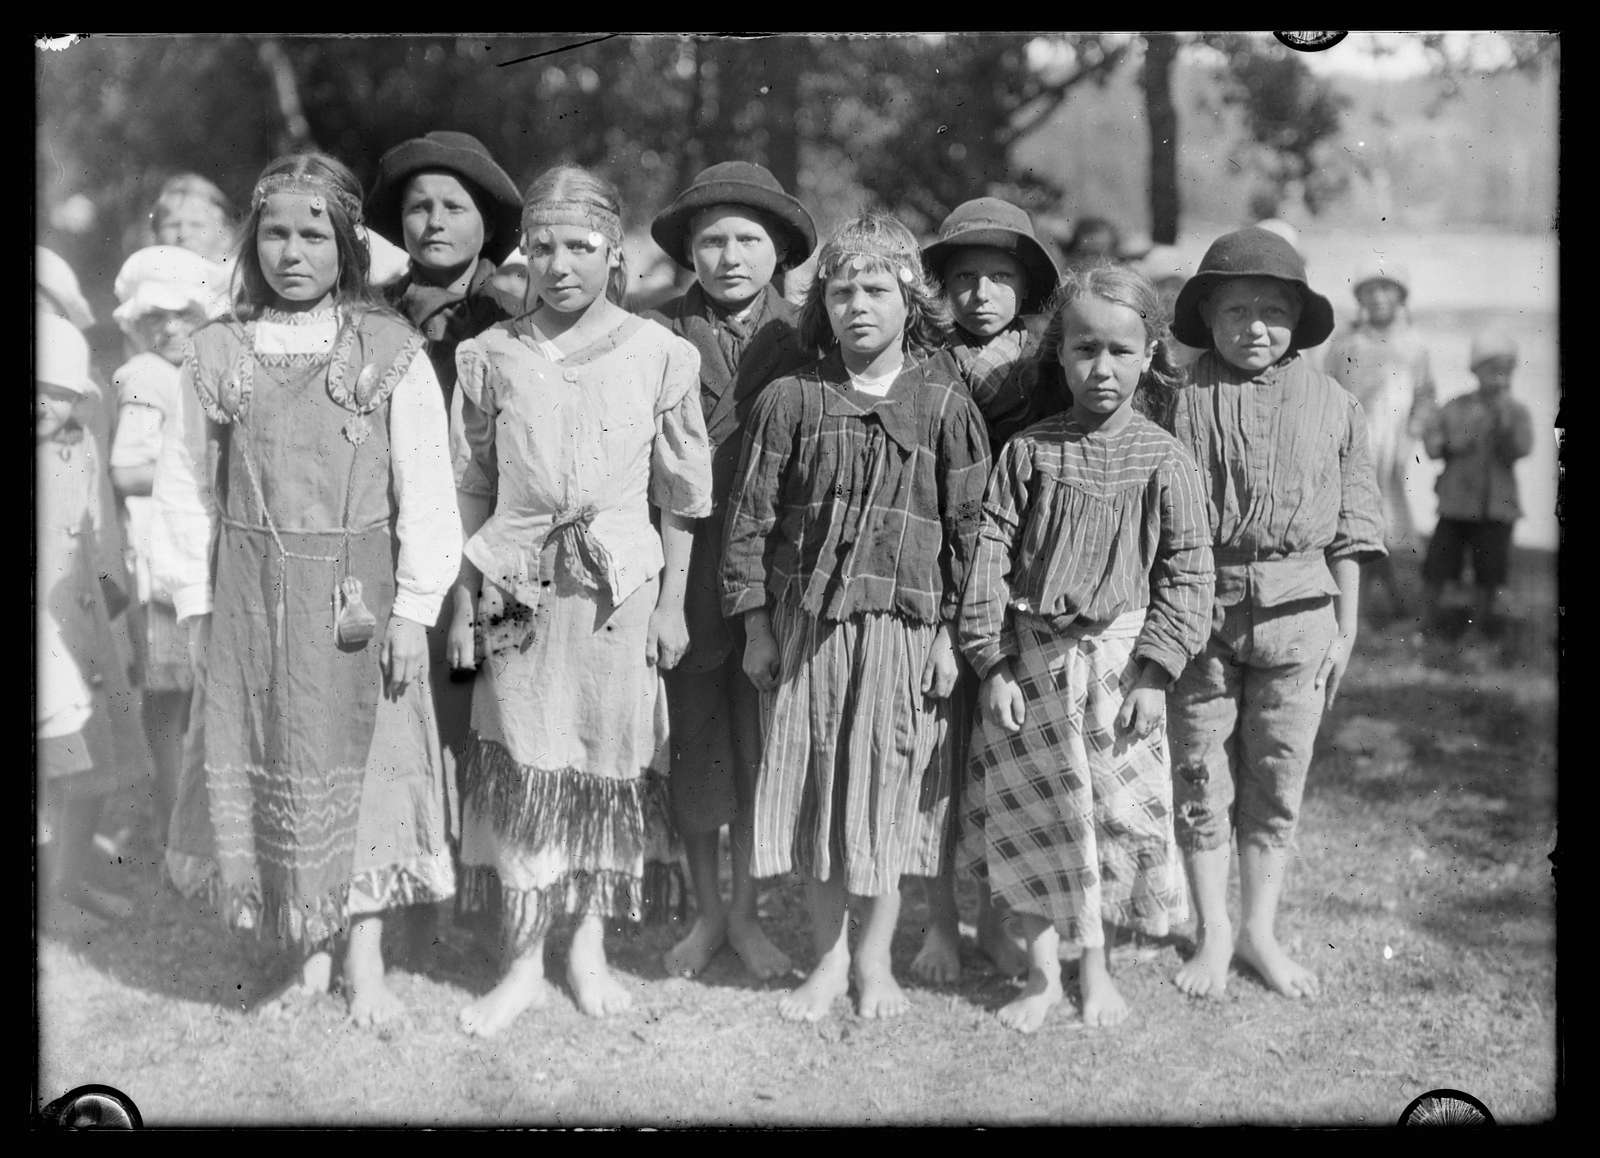 Finland News Service, WAR ORPHANS OF FINLAND, Children of an orphan home at Viborg, Finland who know of American children because of the Junior Red Cross is helping them with food and clothing. They are dressed for one of the Finnish folk dances in honor of a visit of their American benfactors. Finland is making brave efforts to improve the health and environment of its children. Like several other European states that have won their freedom as a direct result of the recent world upheavel, Finland is working hard to consolidate her gains and build up her national life